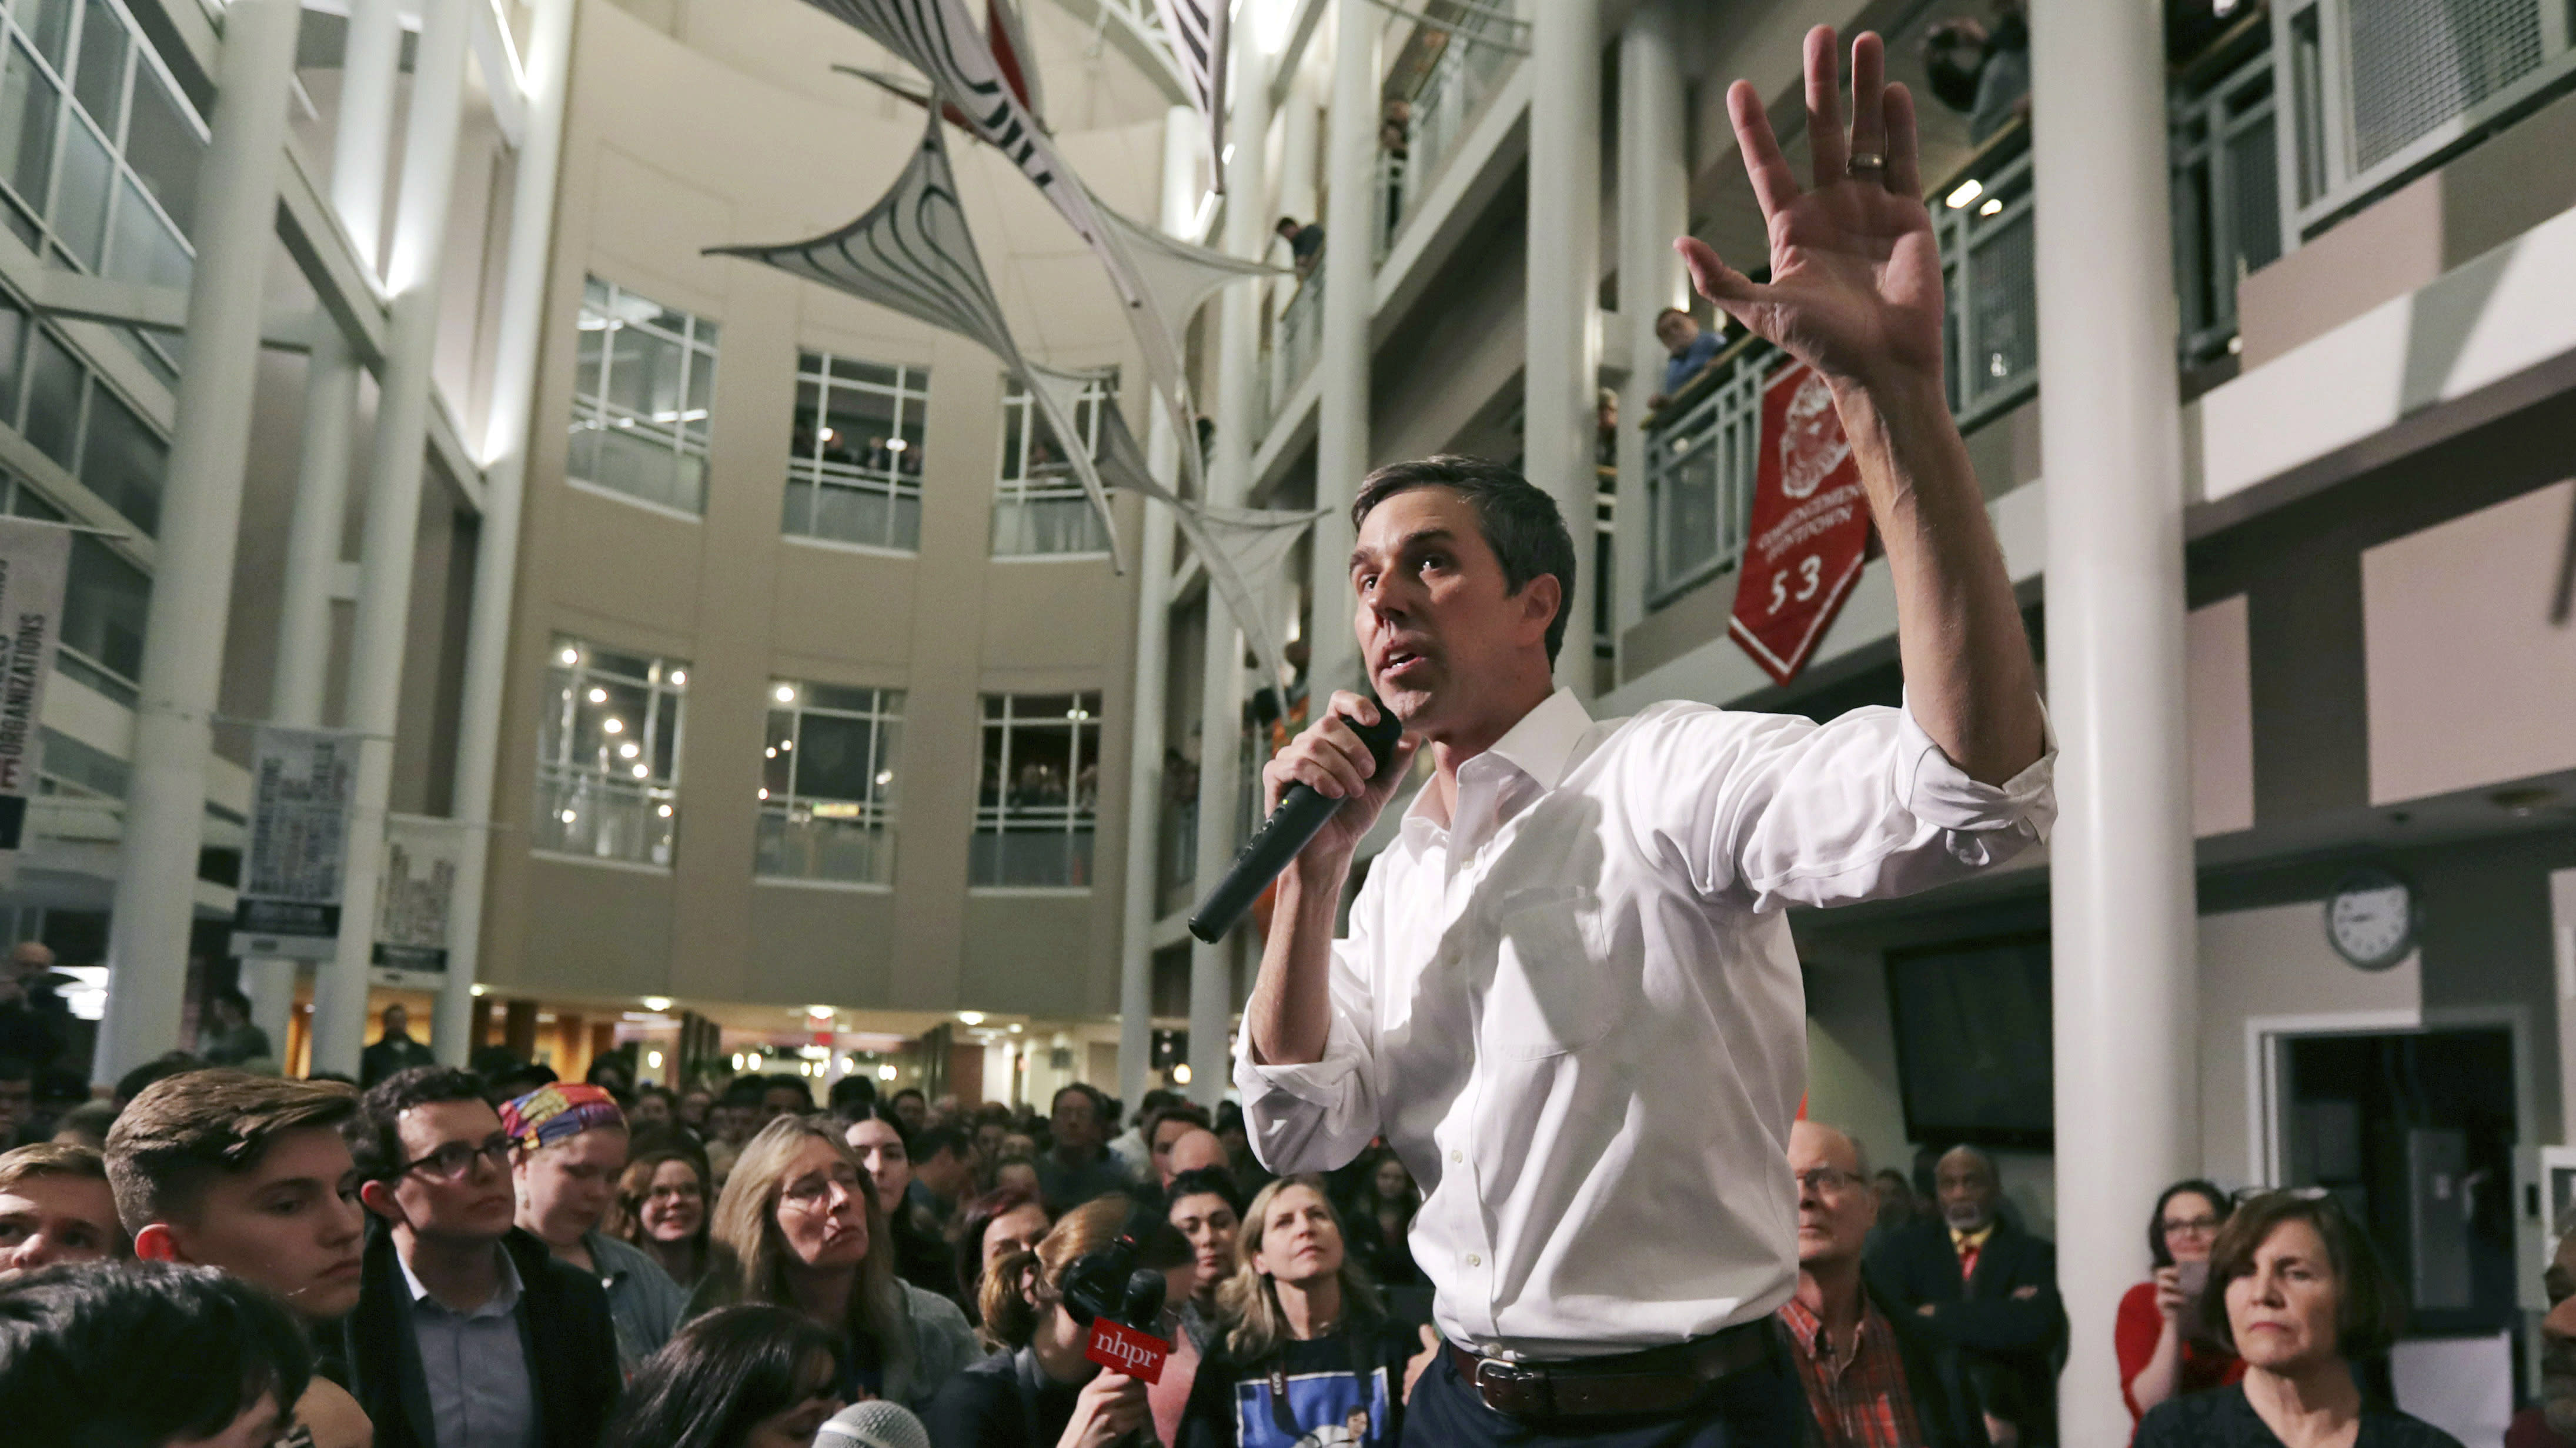 FILE - In this March 19, 2019 file photo, Democratic presidential candidate Beto O'Rourke gestures during a campaign stop at Keene State College in Keene. After a mass shooting in his hometown, Democrat Beto O'Rourke has again remade his White House bid. (AP Photo/Charles Krupa)